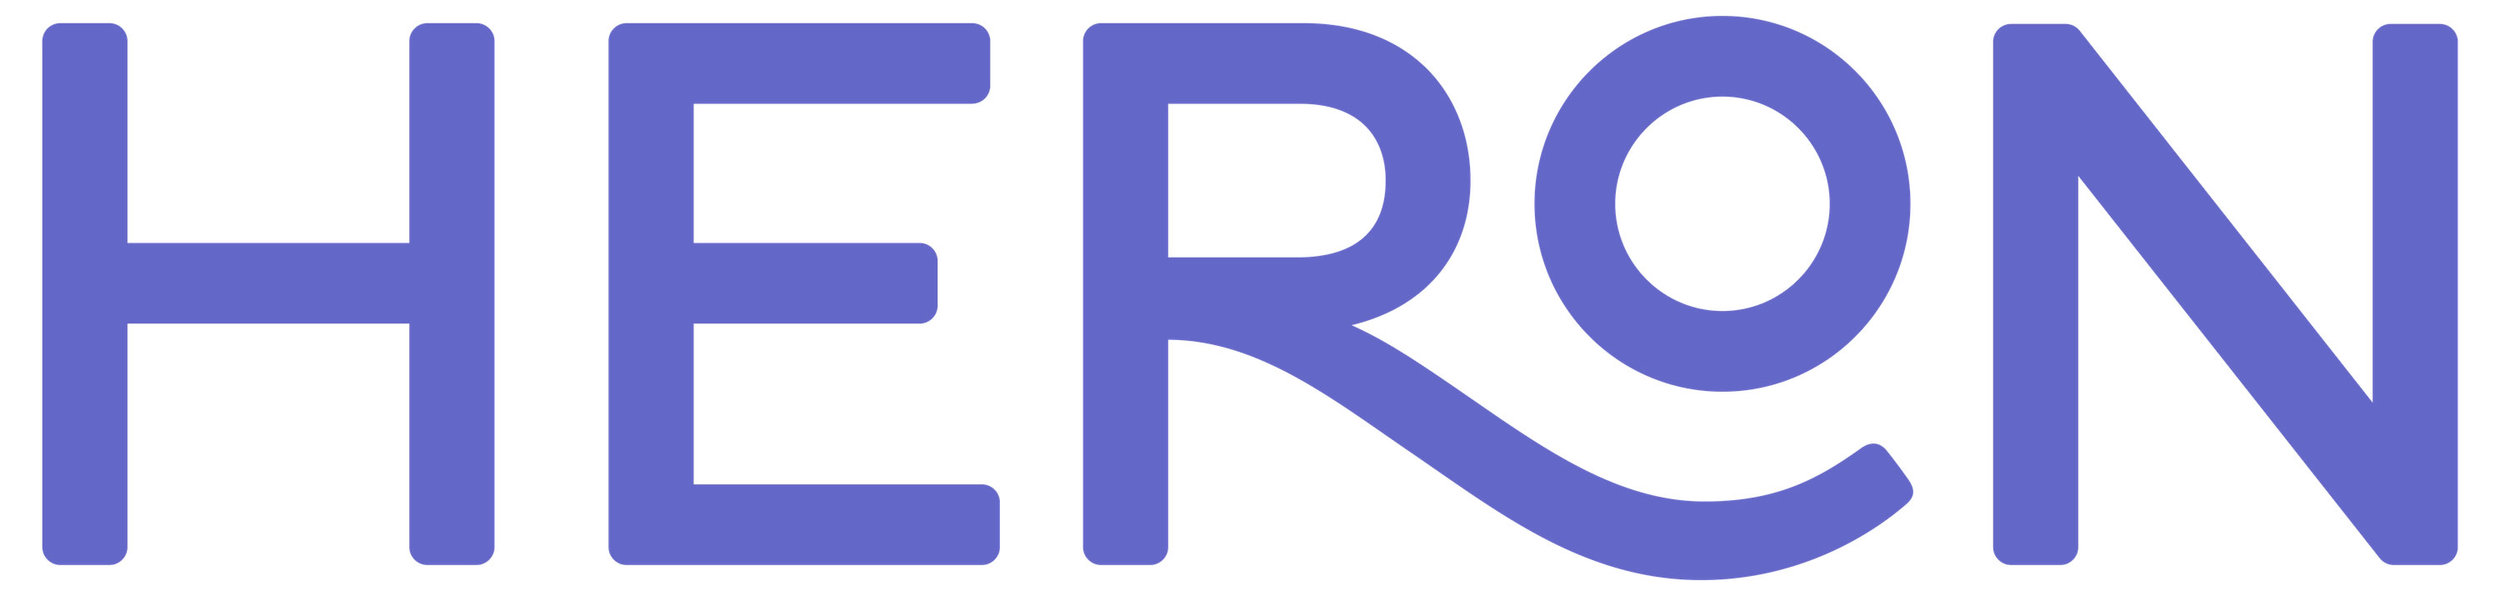 heron logo purple.jpg